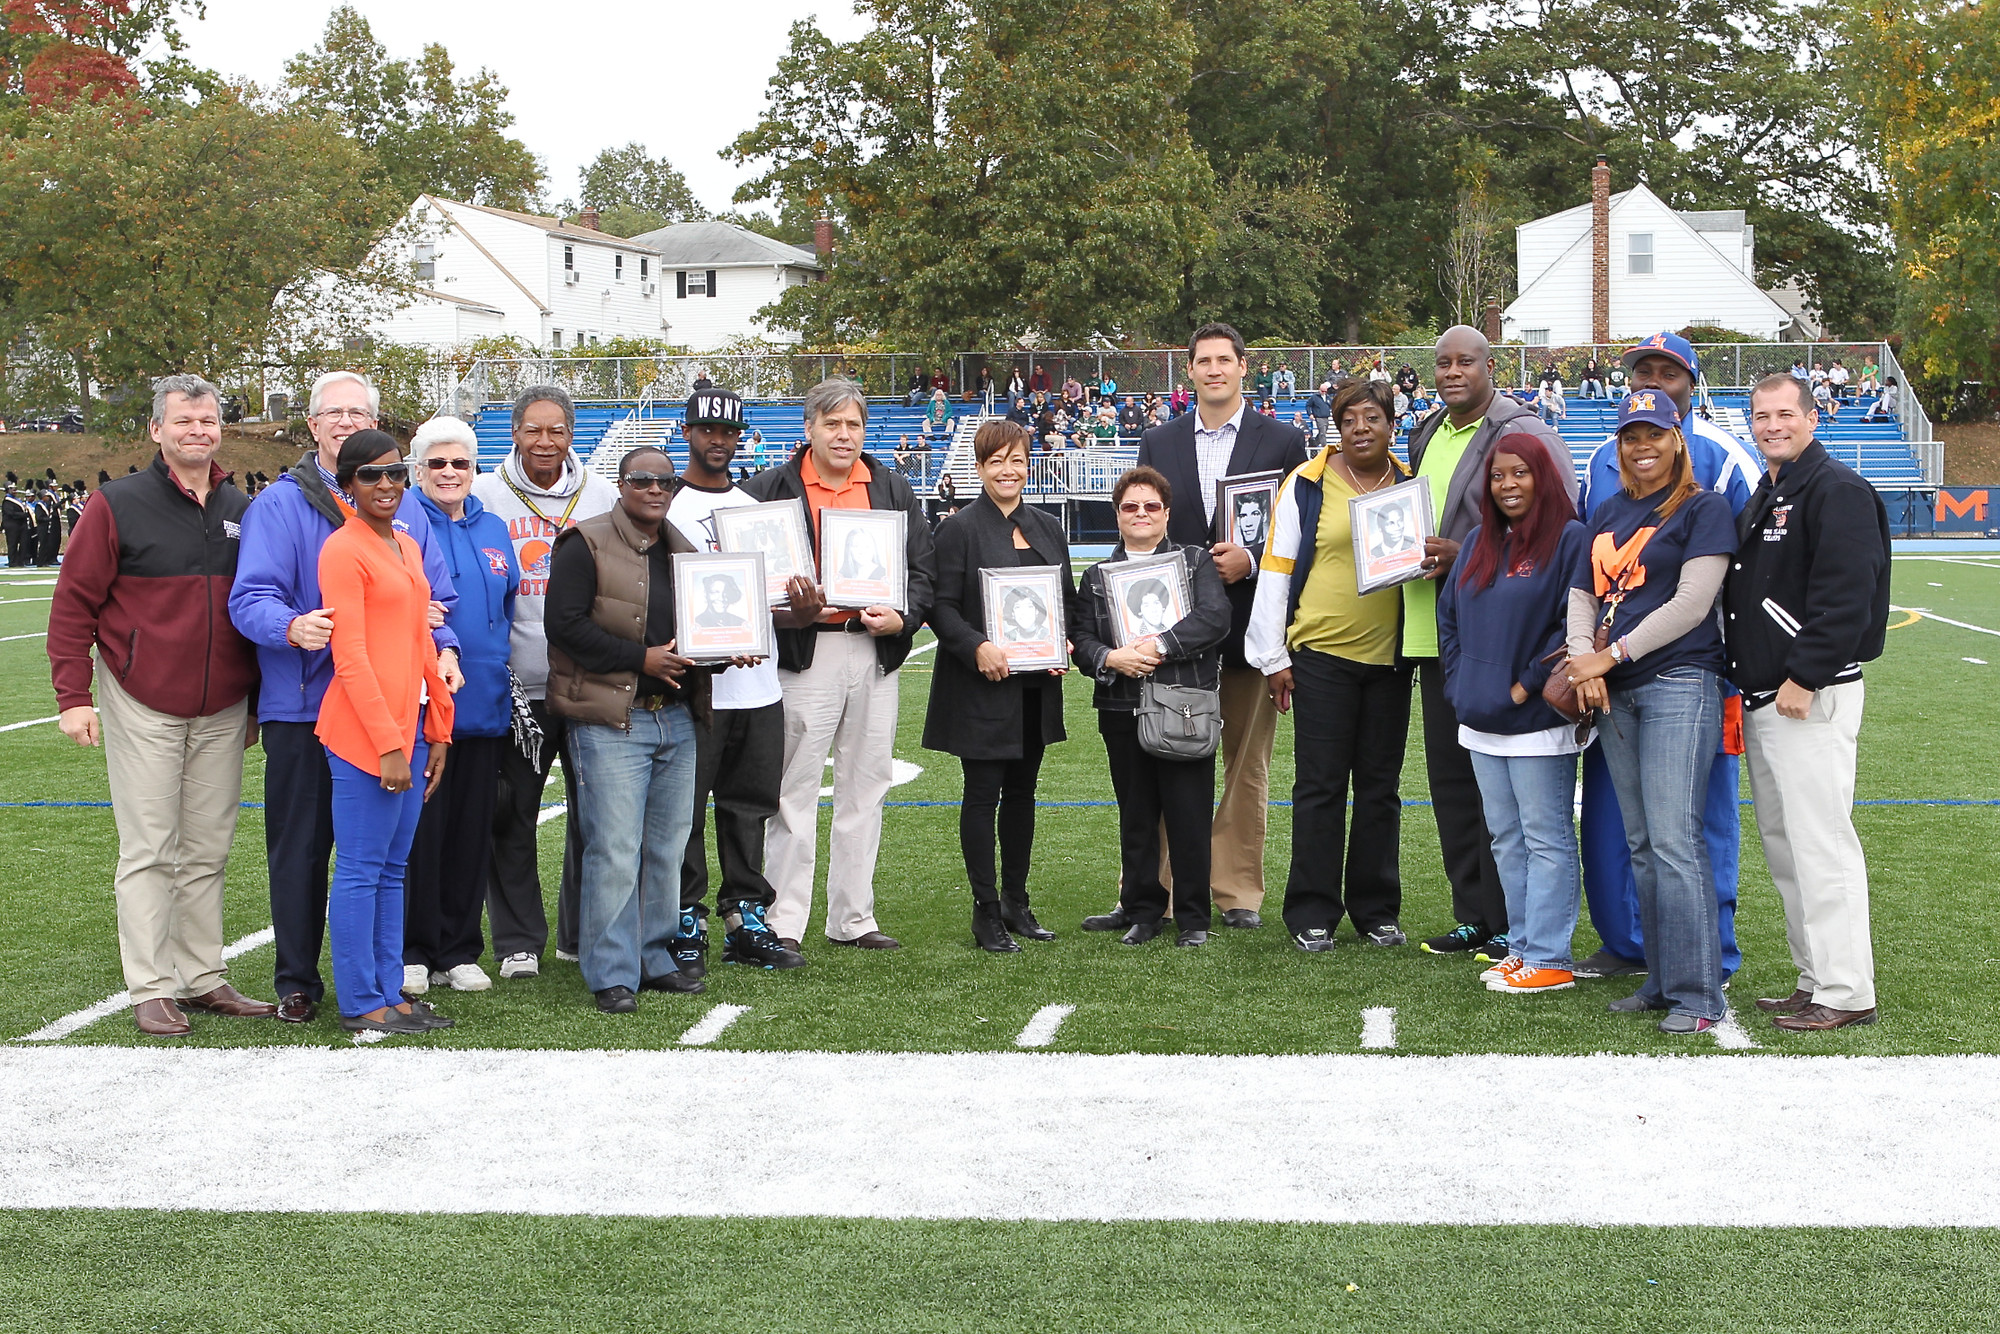 Malverne Hall of Fame  inductees reminisced about their glory days with Malverne High Principal Dr. Vincent Romano, far right, and members of the Board of Education.